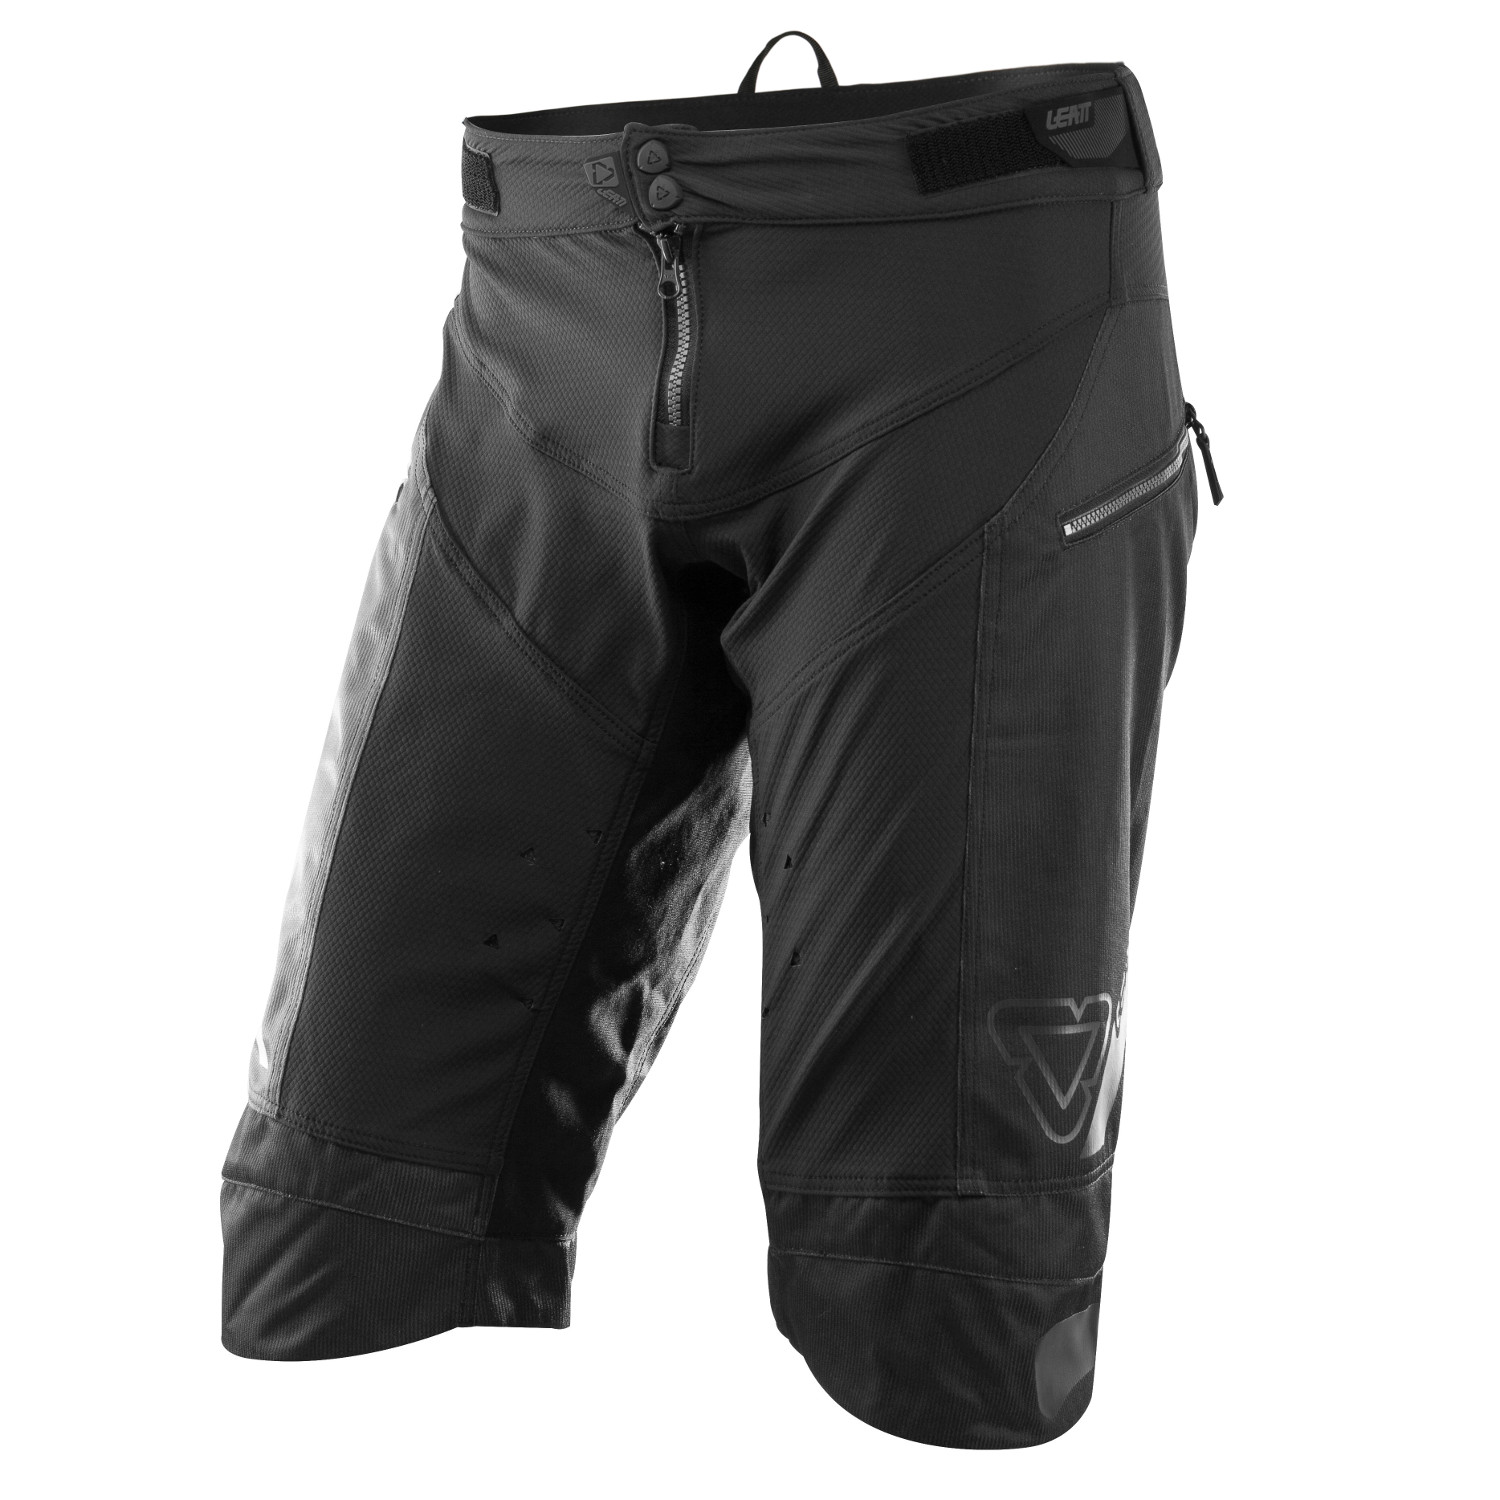 Leatt Downhill-Short DBX 4.0 4.0 4.0 Schwarz Grau 7bd973